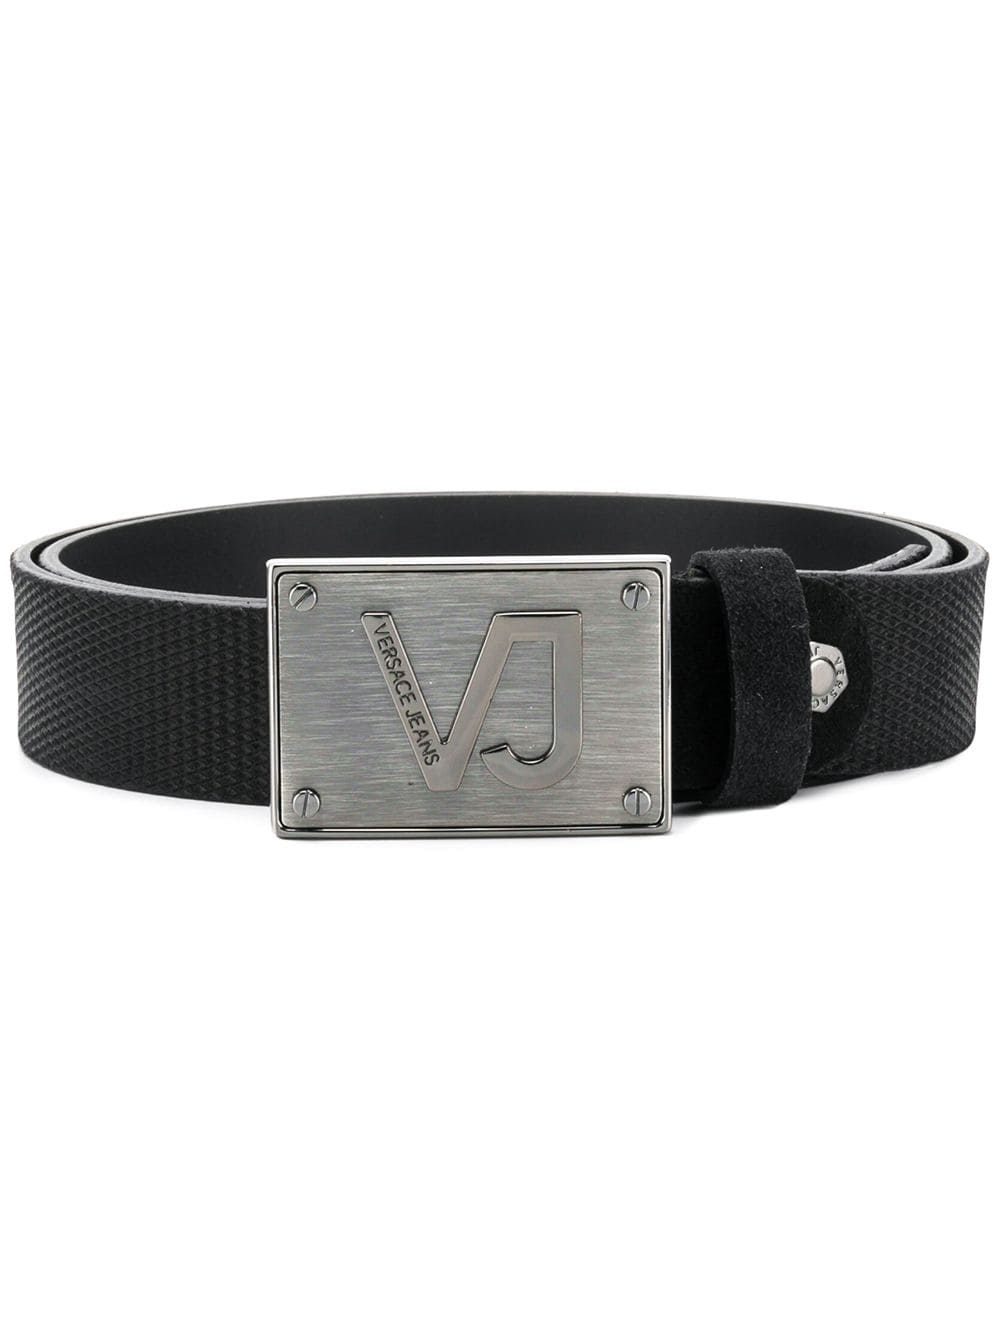 ae9e1842 Versace Jeans logo plate buckle belt - Black | Products in 2019 ...